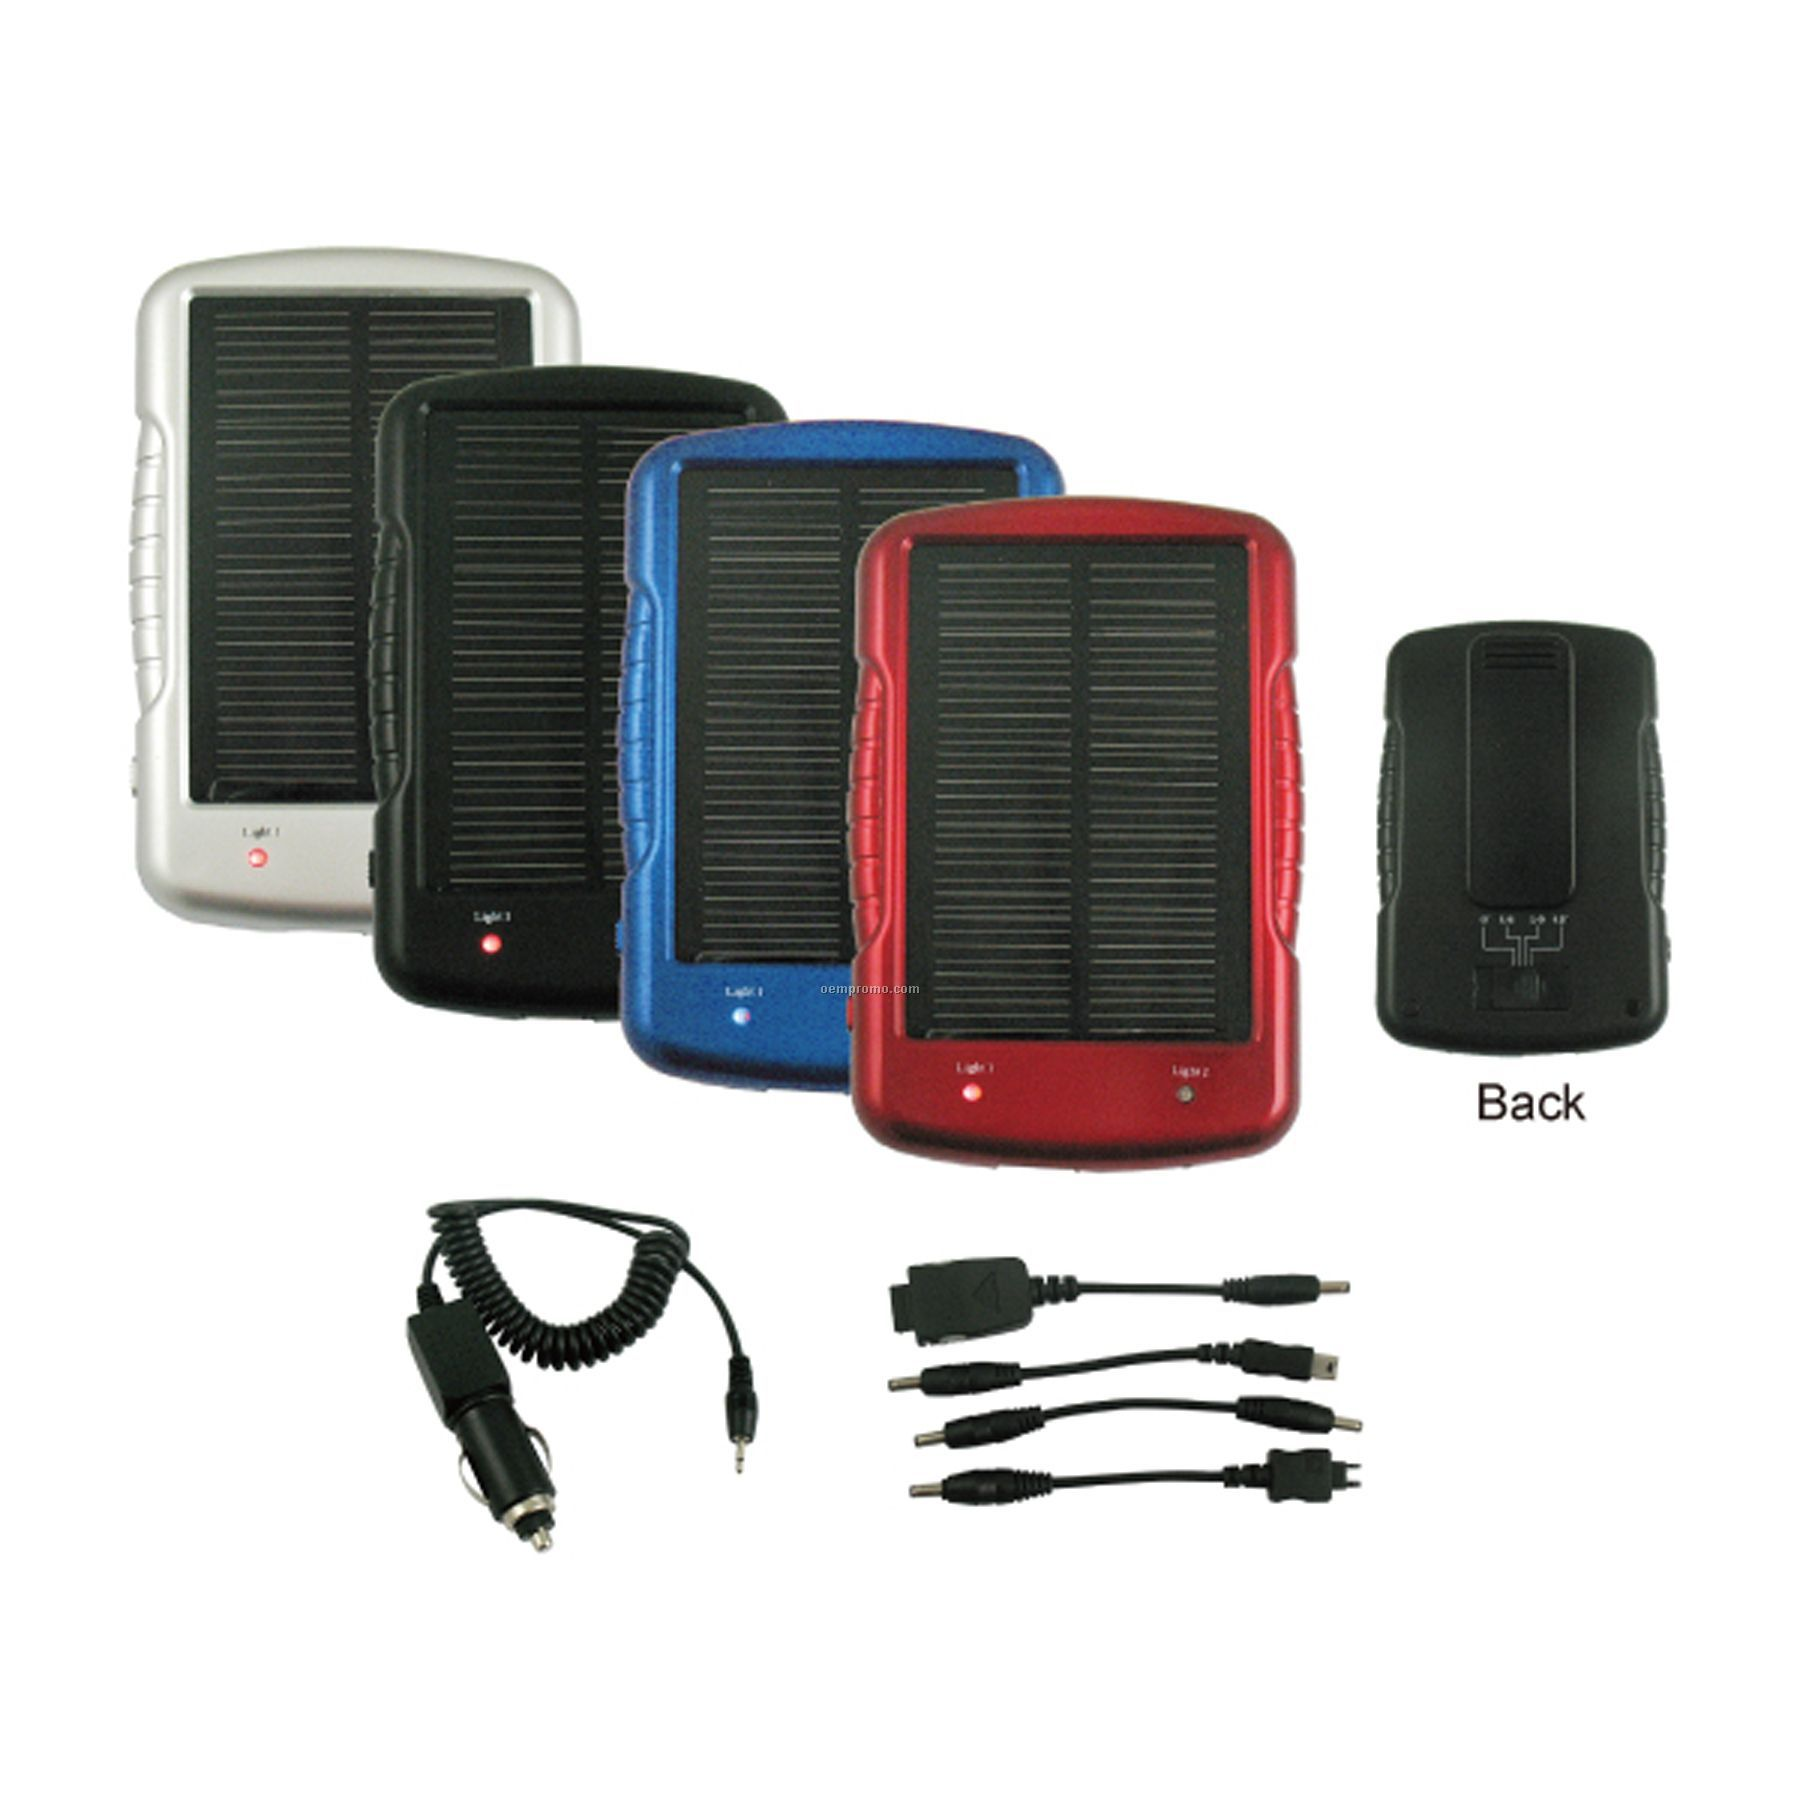 Large Panel Portable Solar Charger